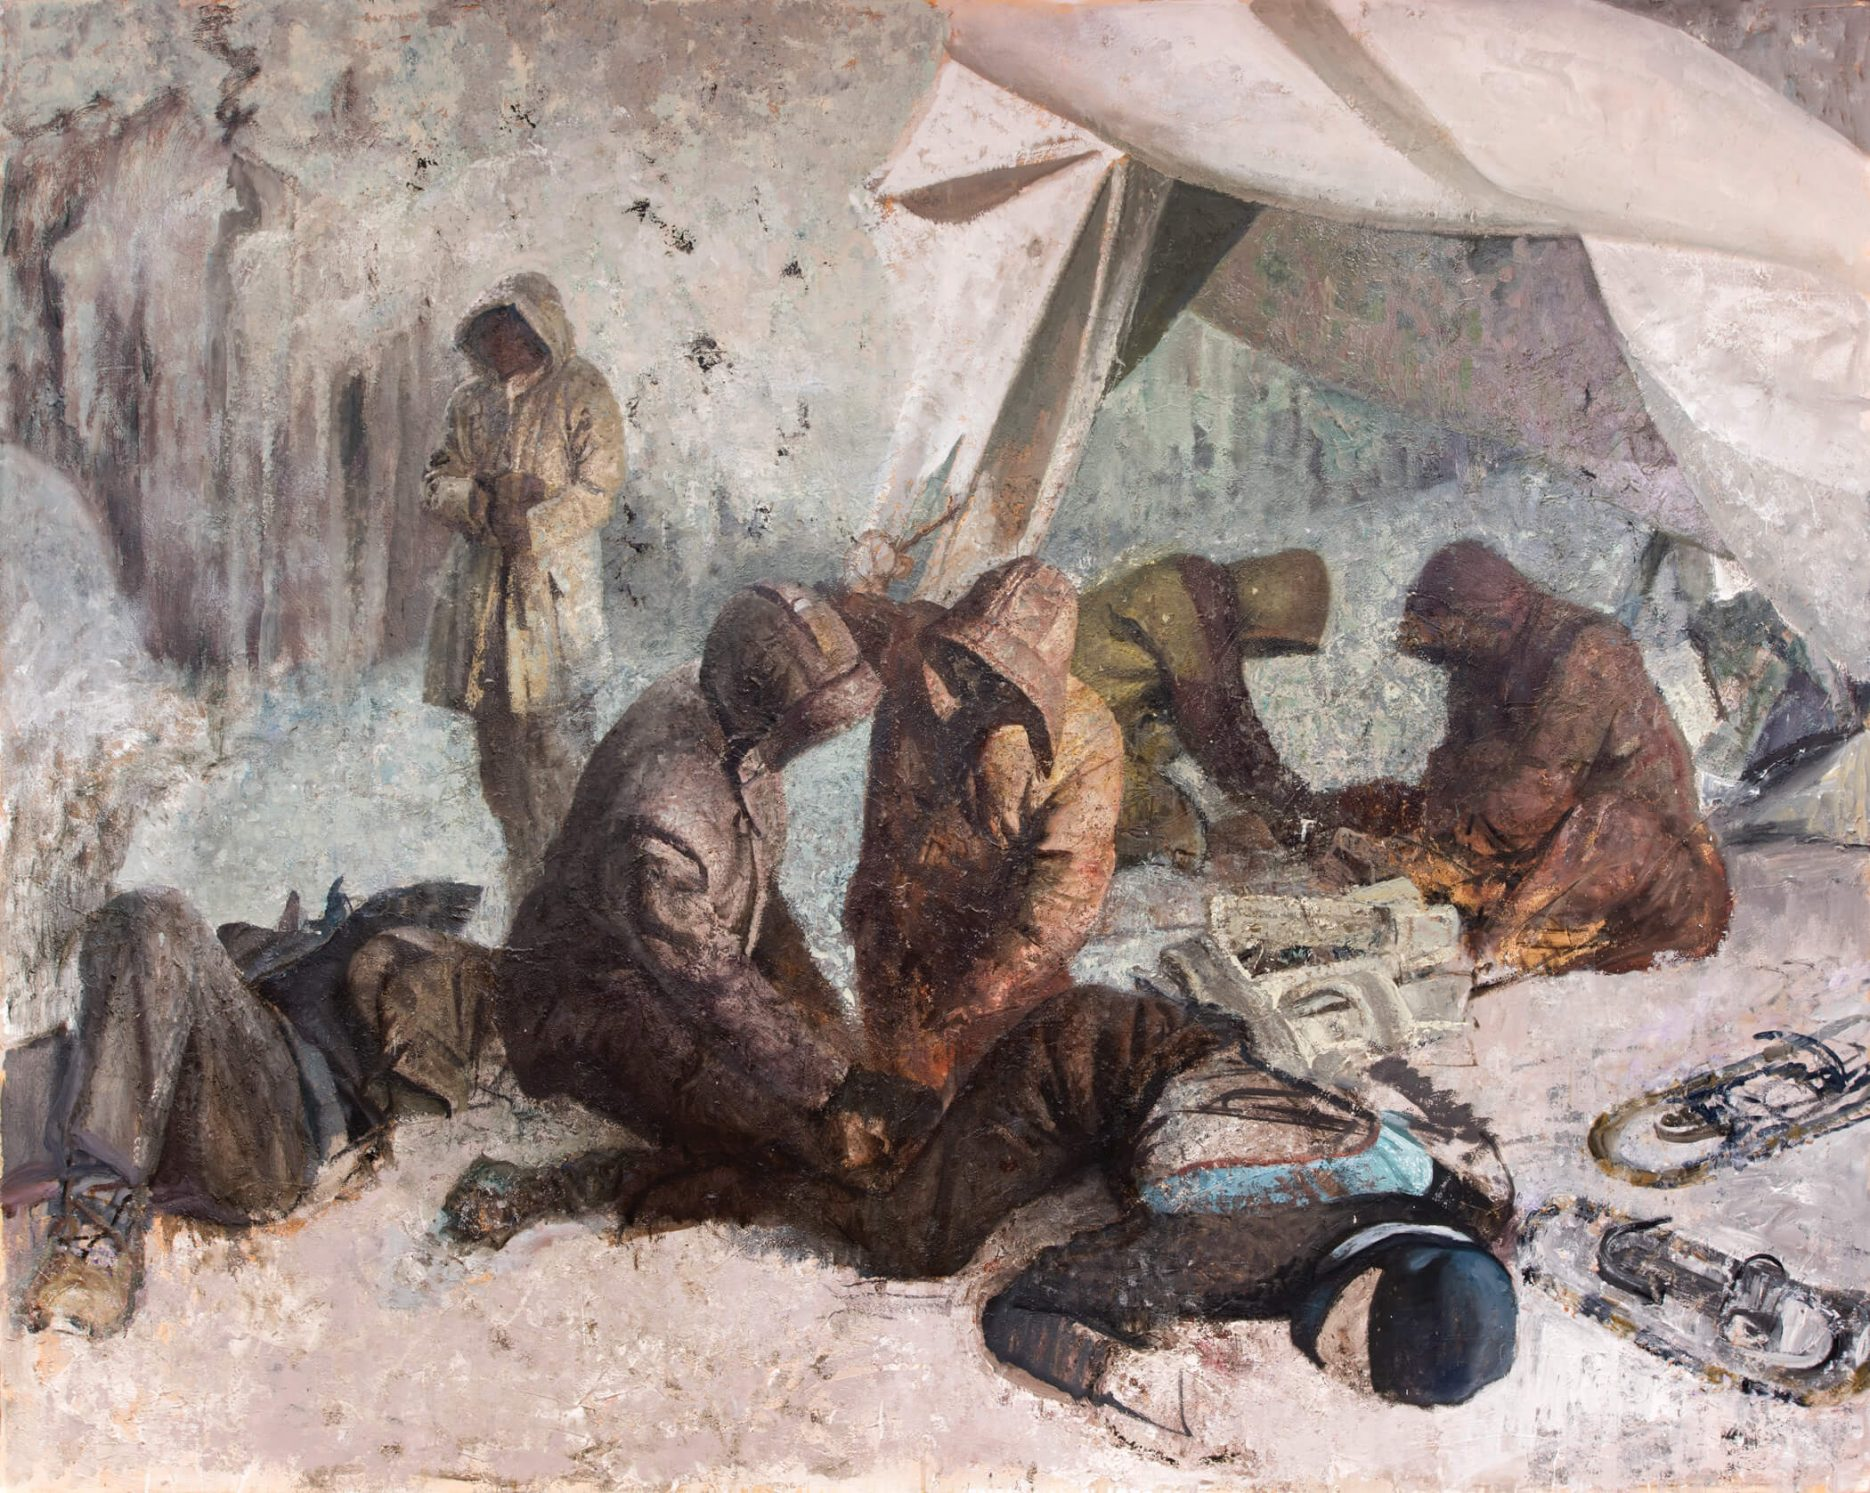 Vincent Desiderio painting